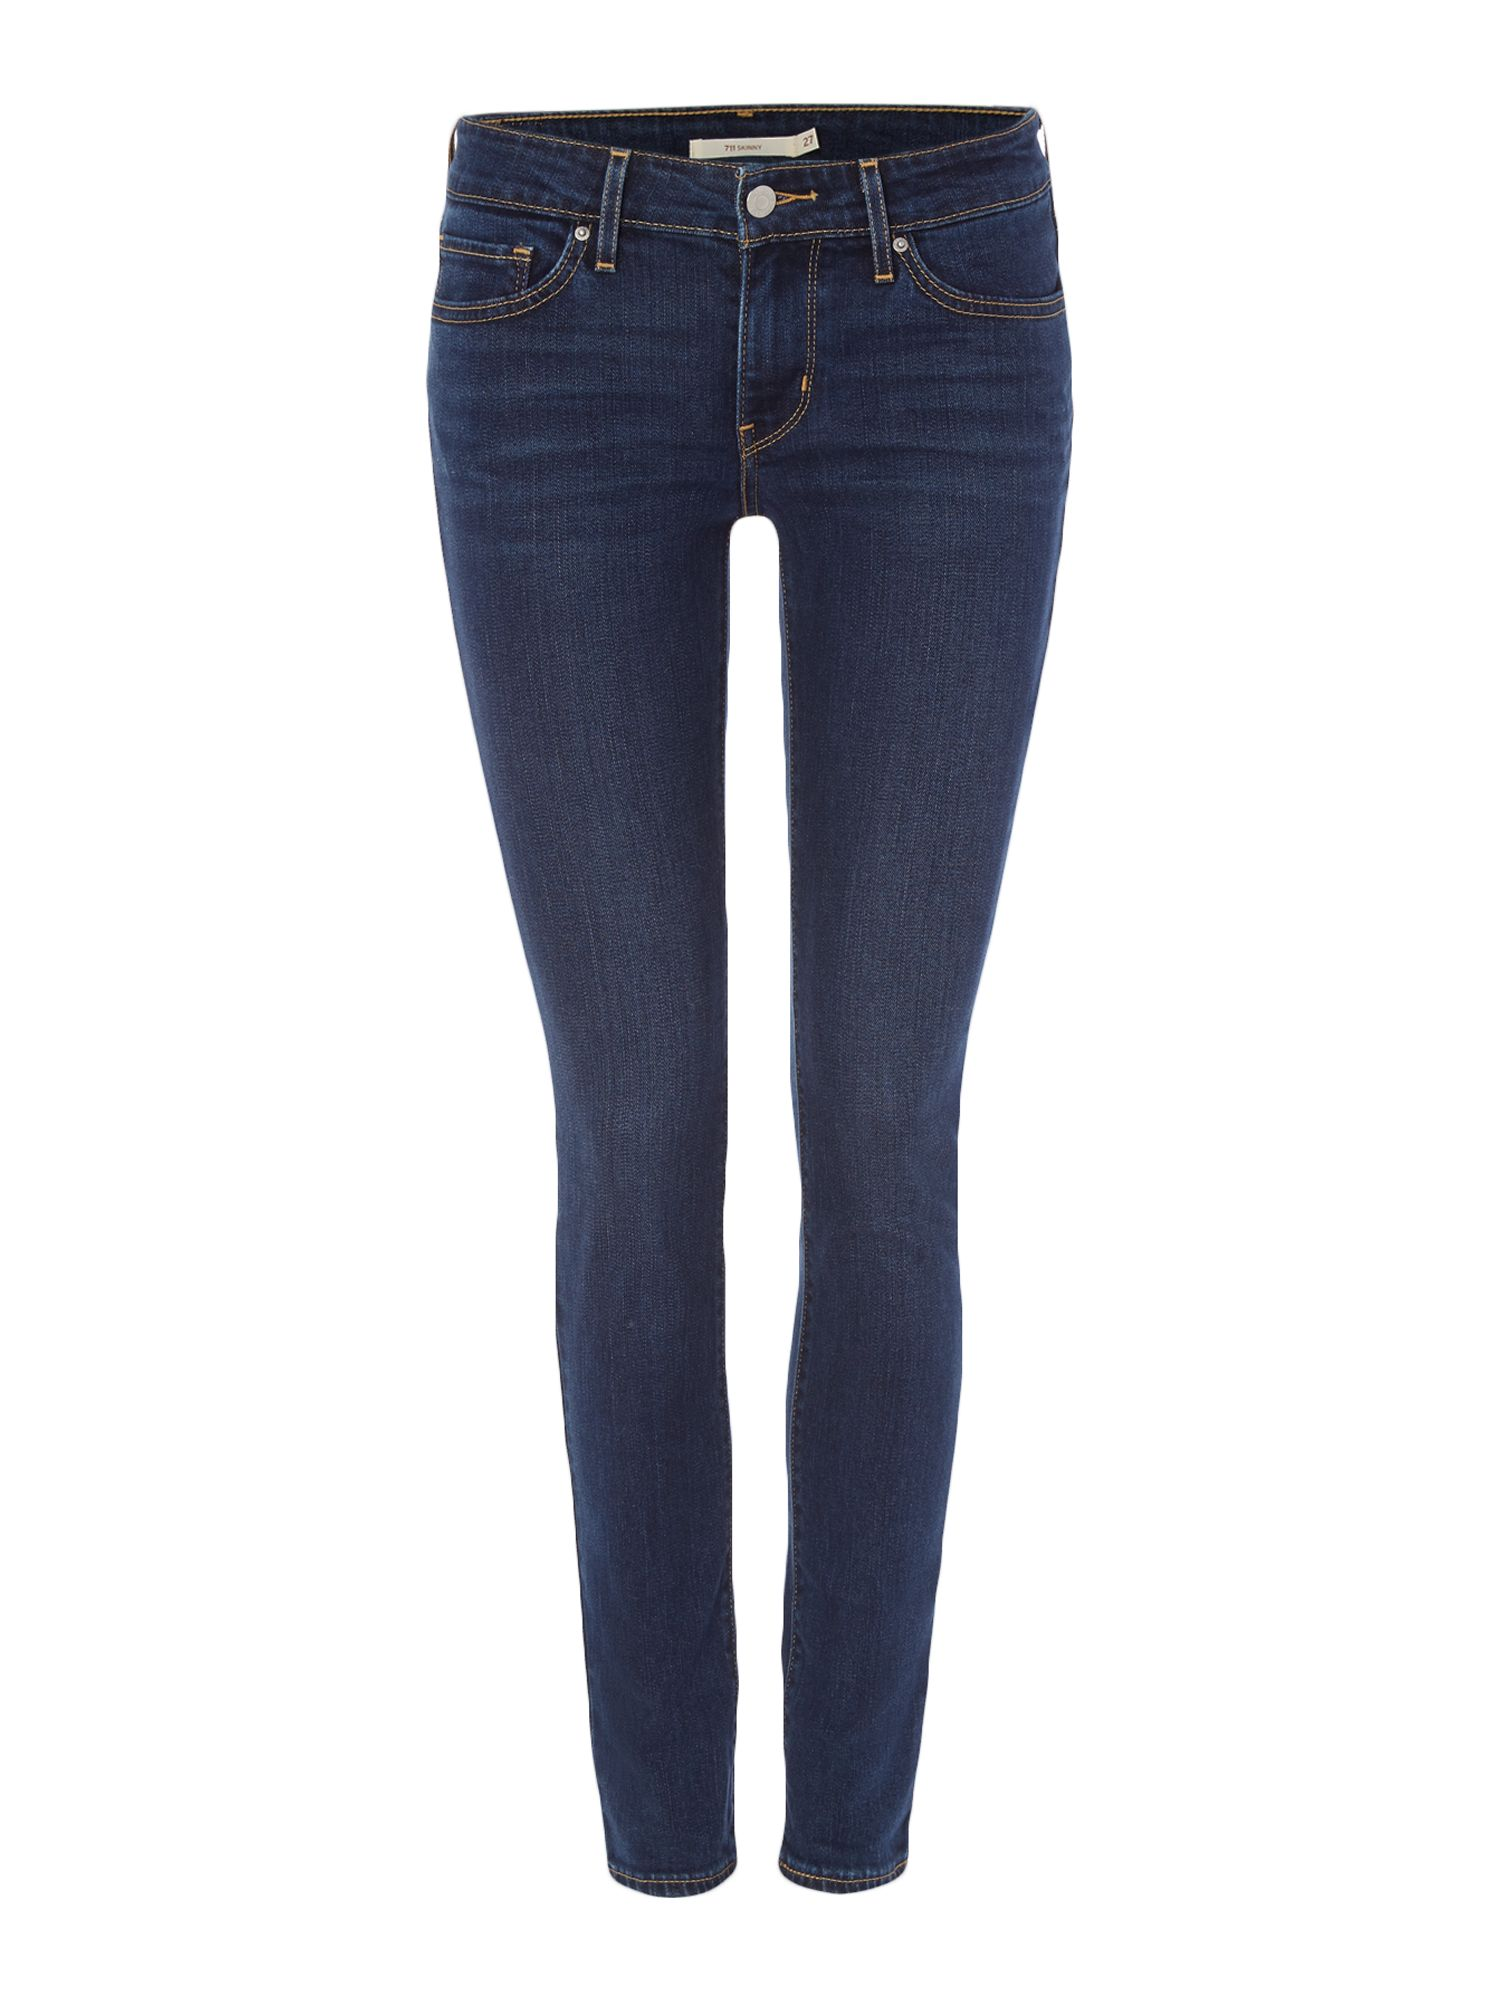 Levis 711 Skinny High Rise Jeans In City Blues, Denim Dark Wash